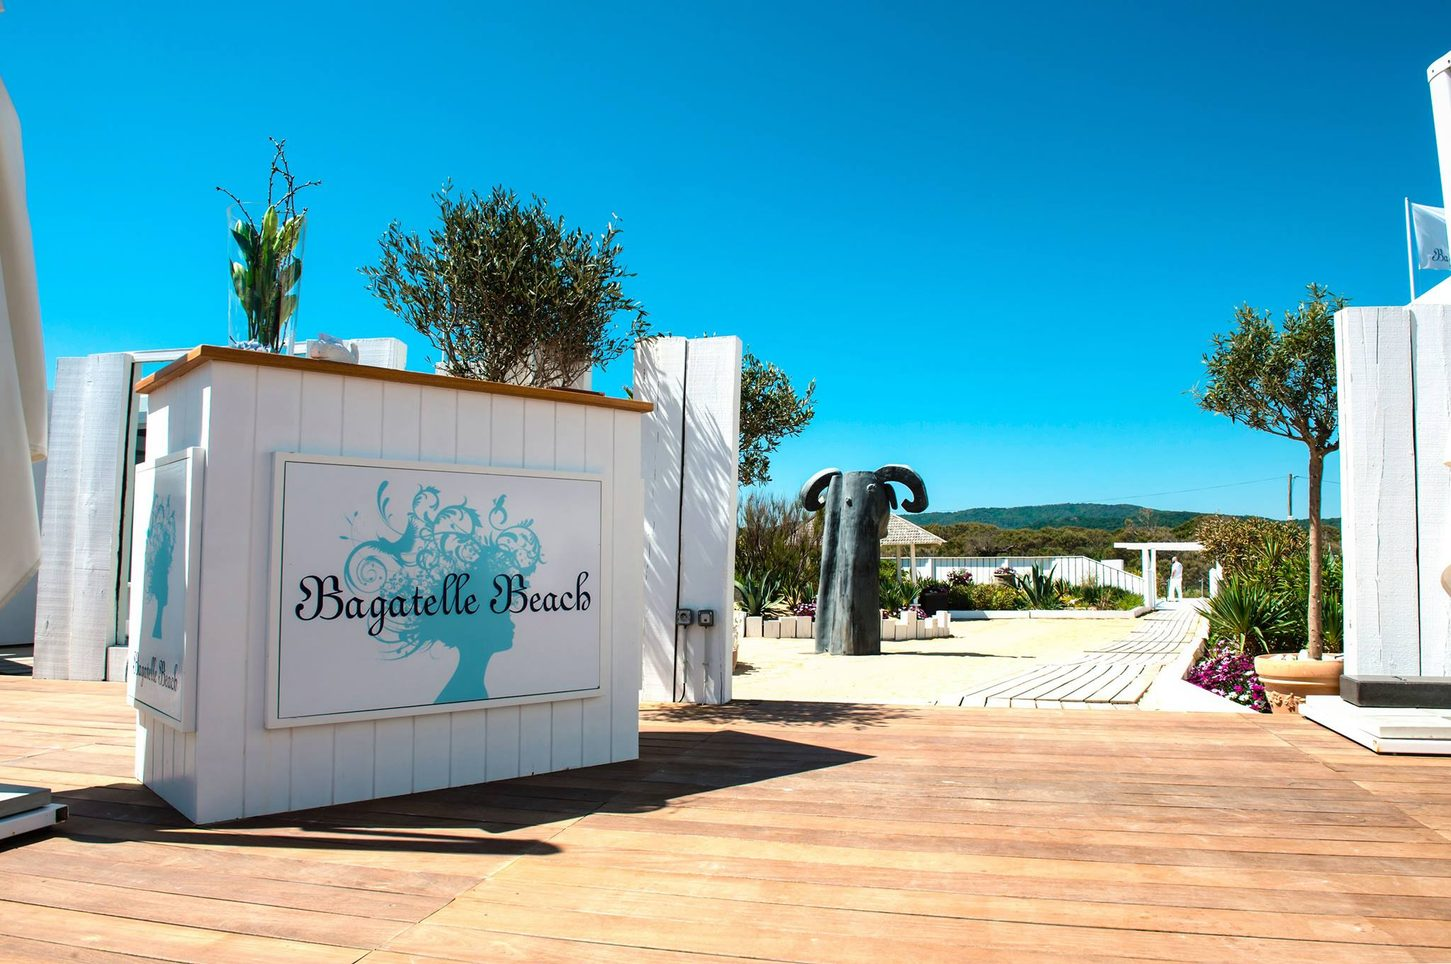 Bagatelle Beach Image 2